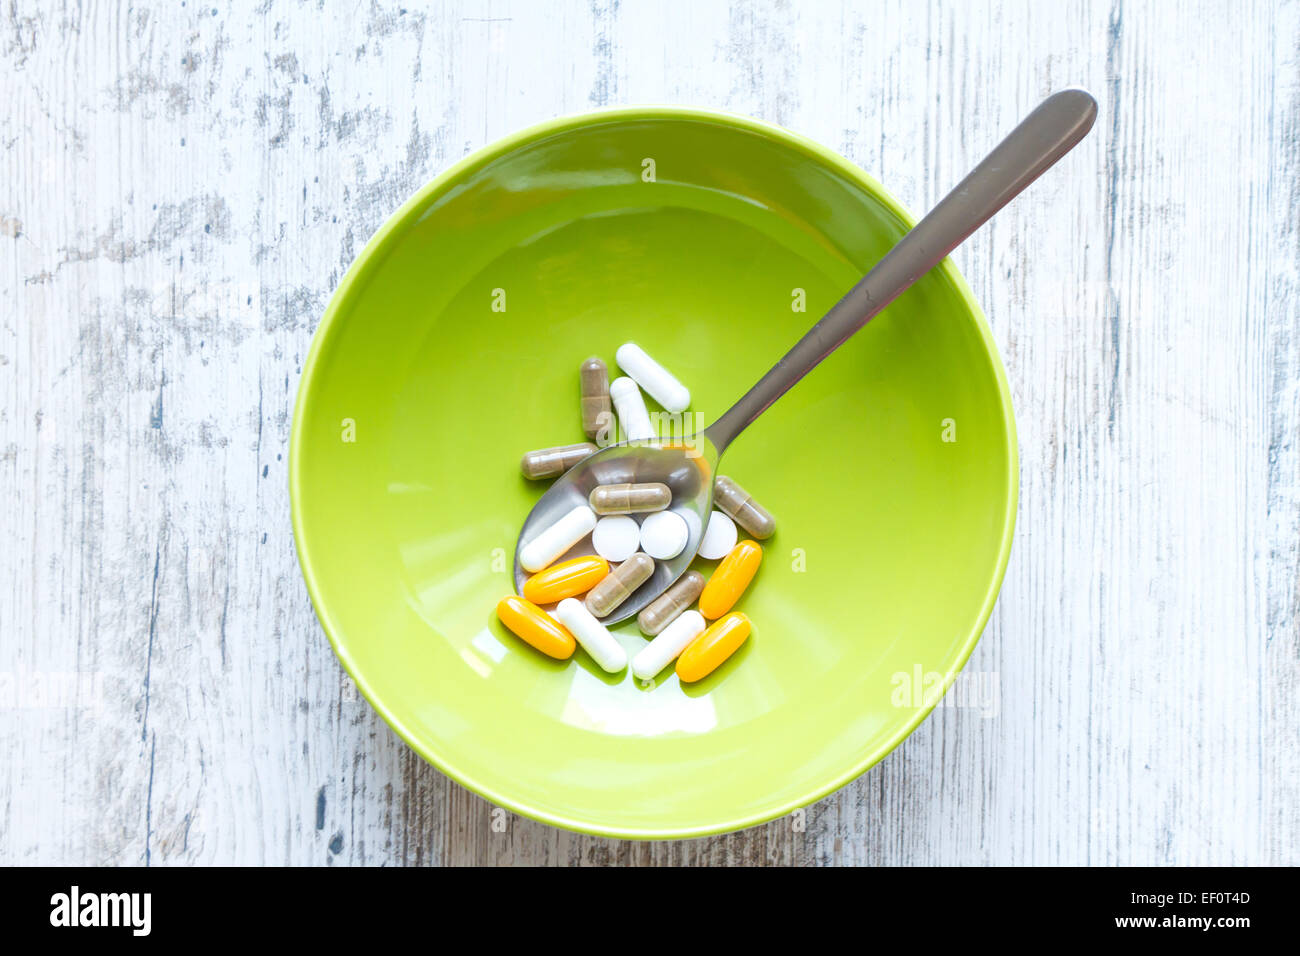 Vitamins and dietary supplements - Stock Image